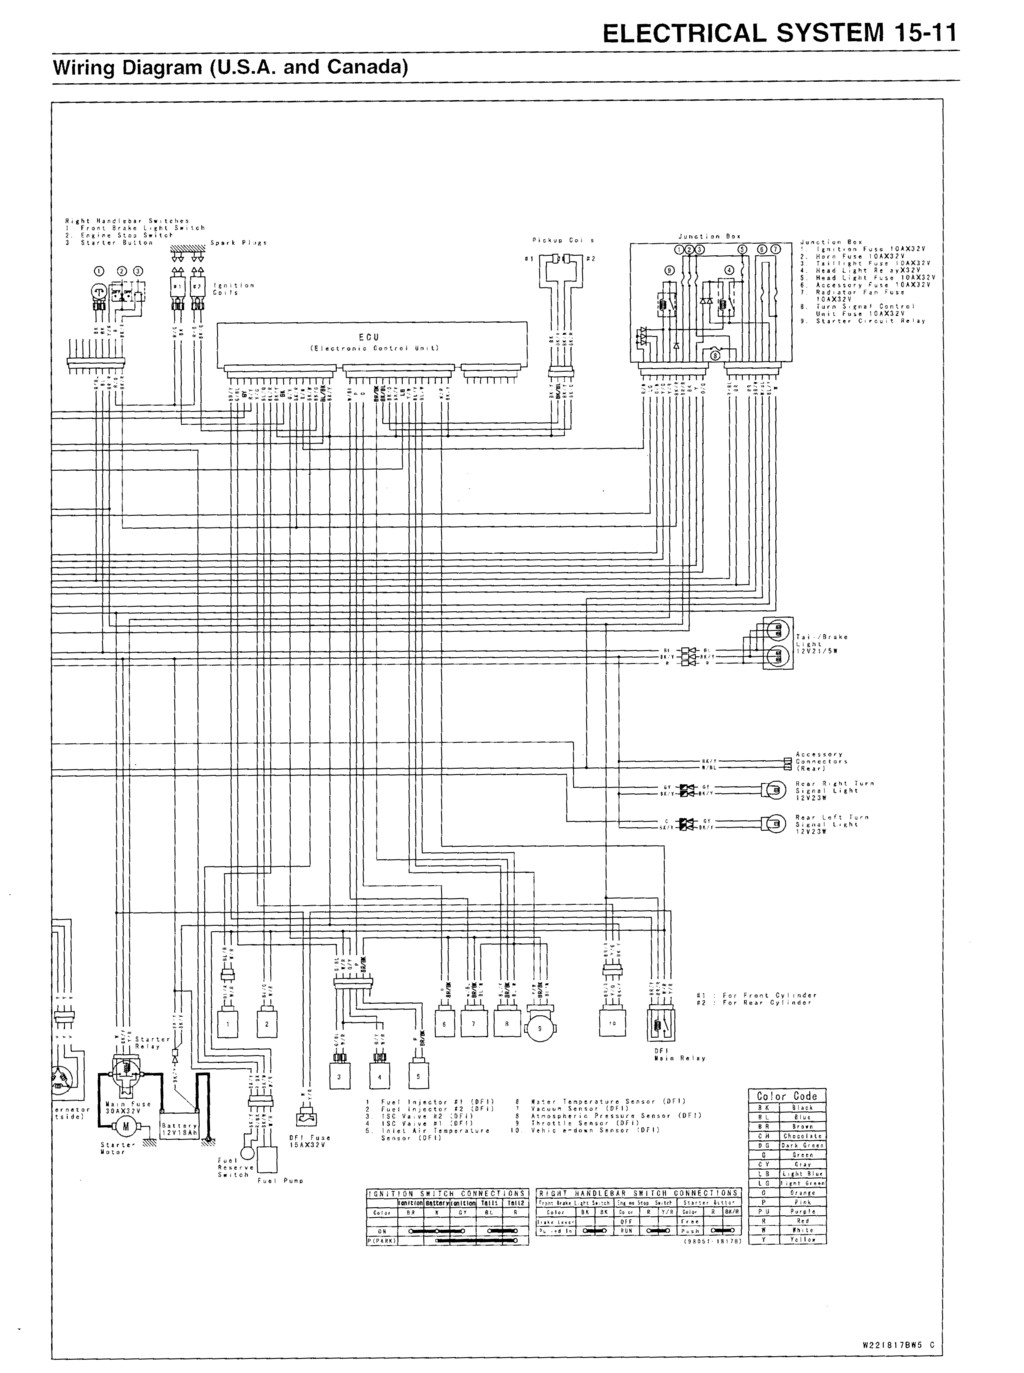 kawasaki vulcan coil wiring diagram search for wiring diagrams u2022 rh happyjournalist com